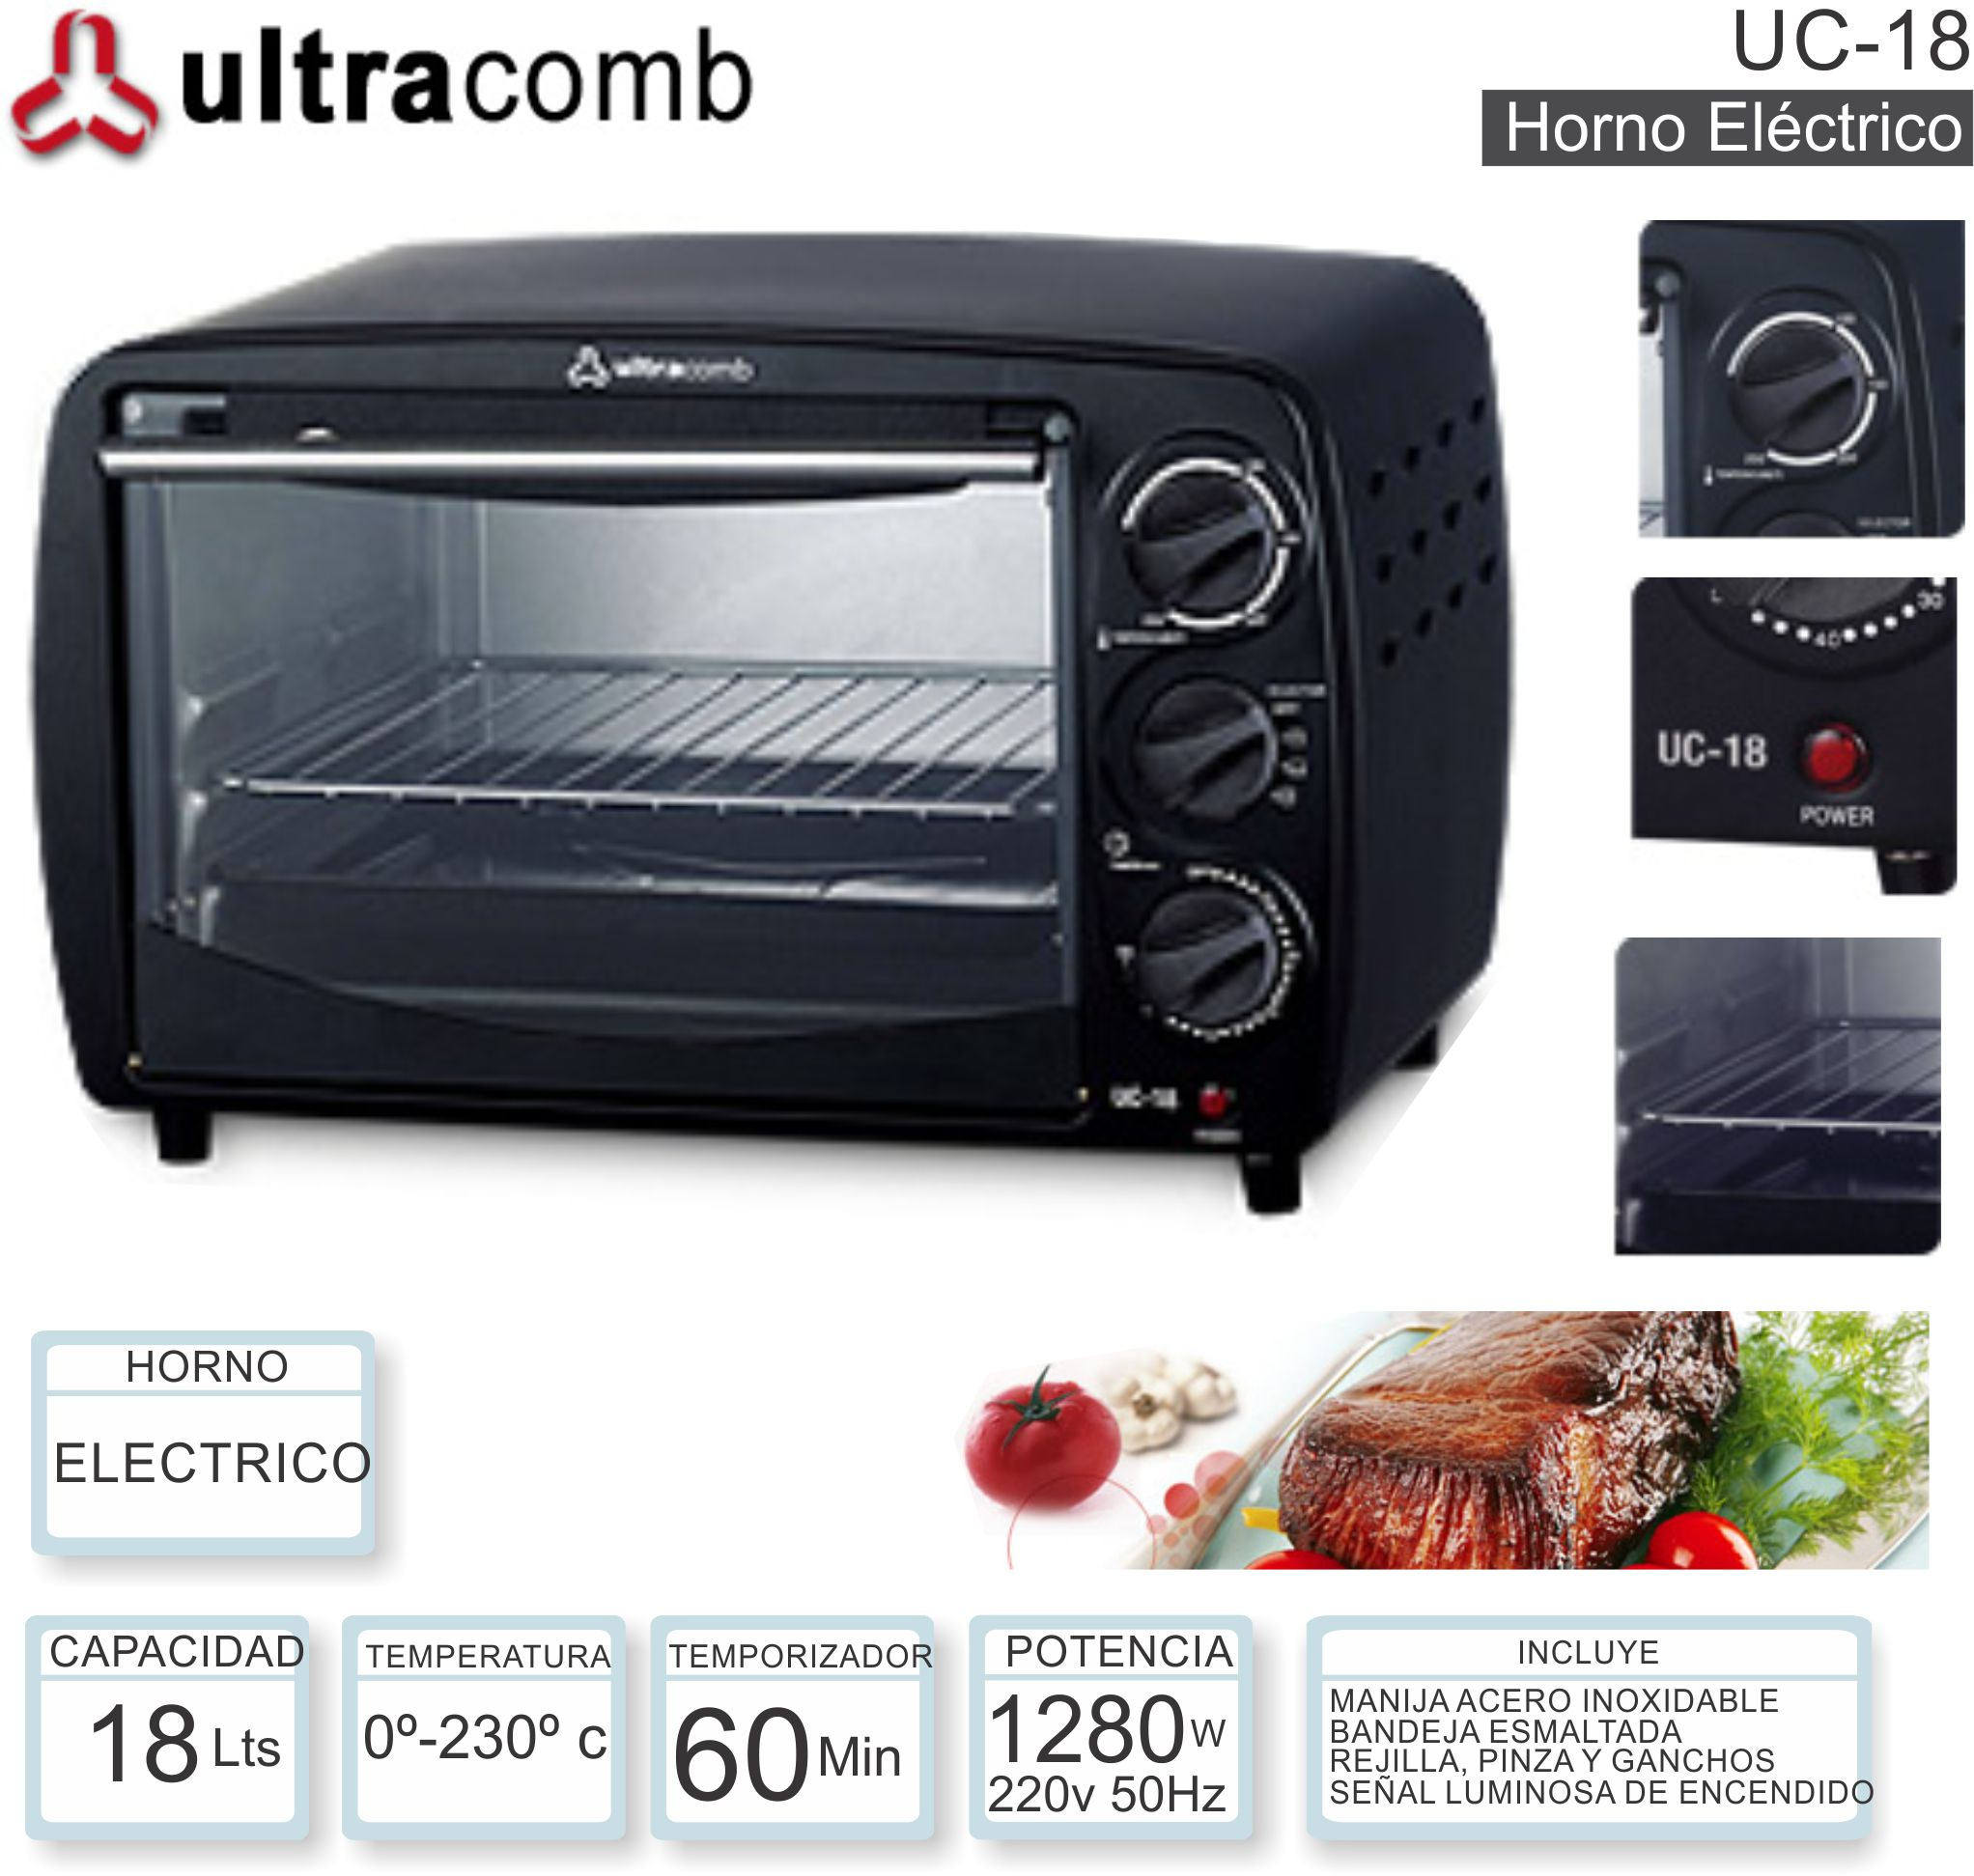 Horno Electrico 18 Lts ULTRACOMB UC-18